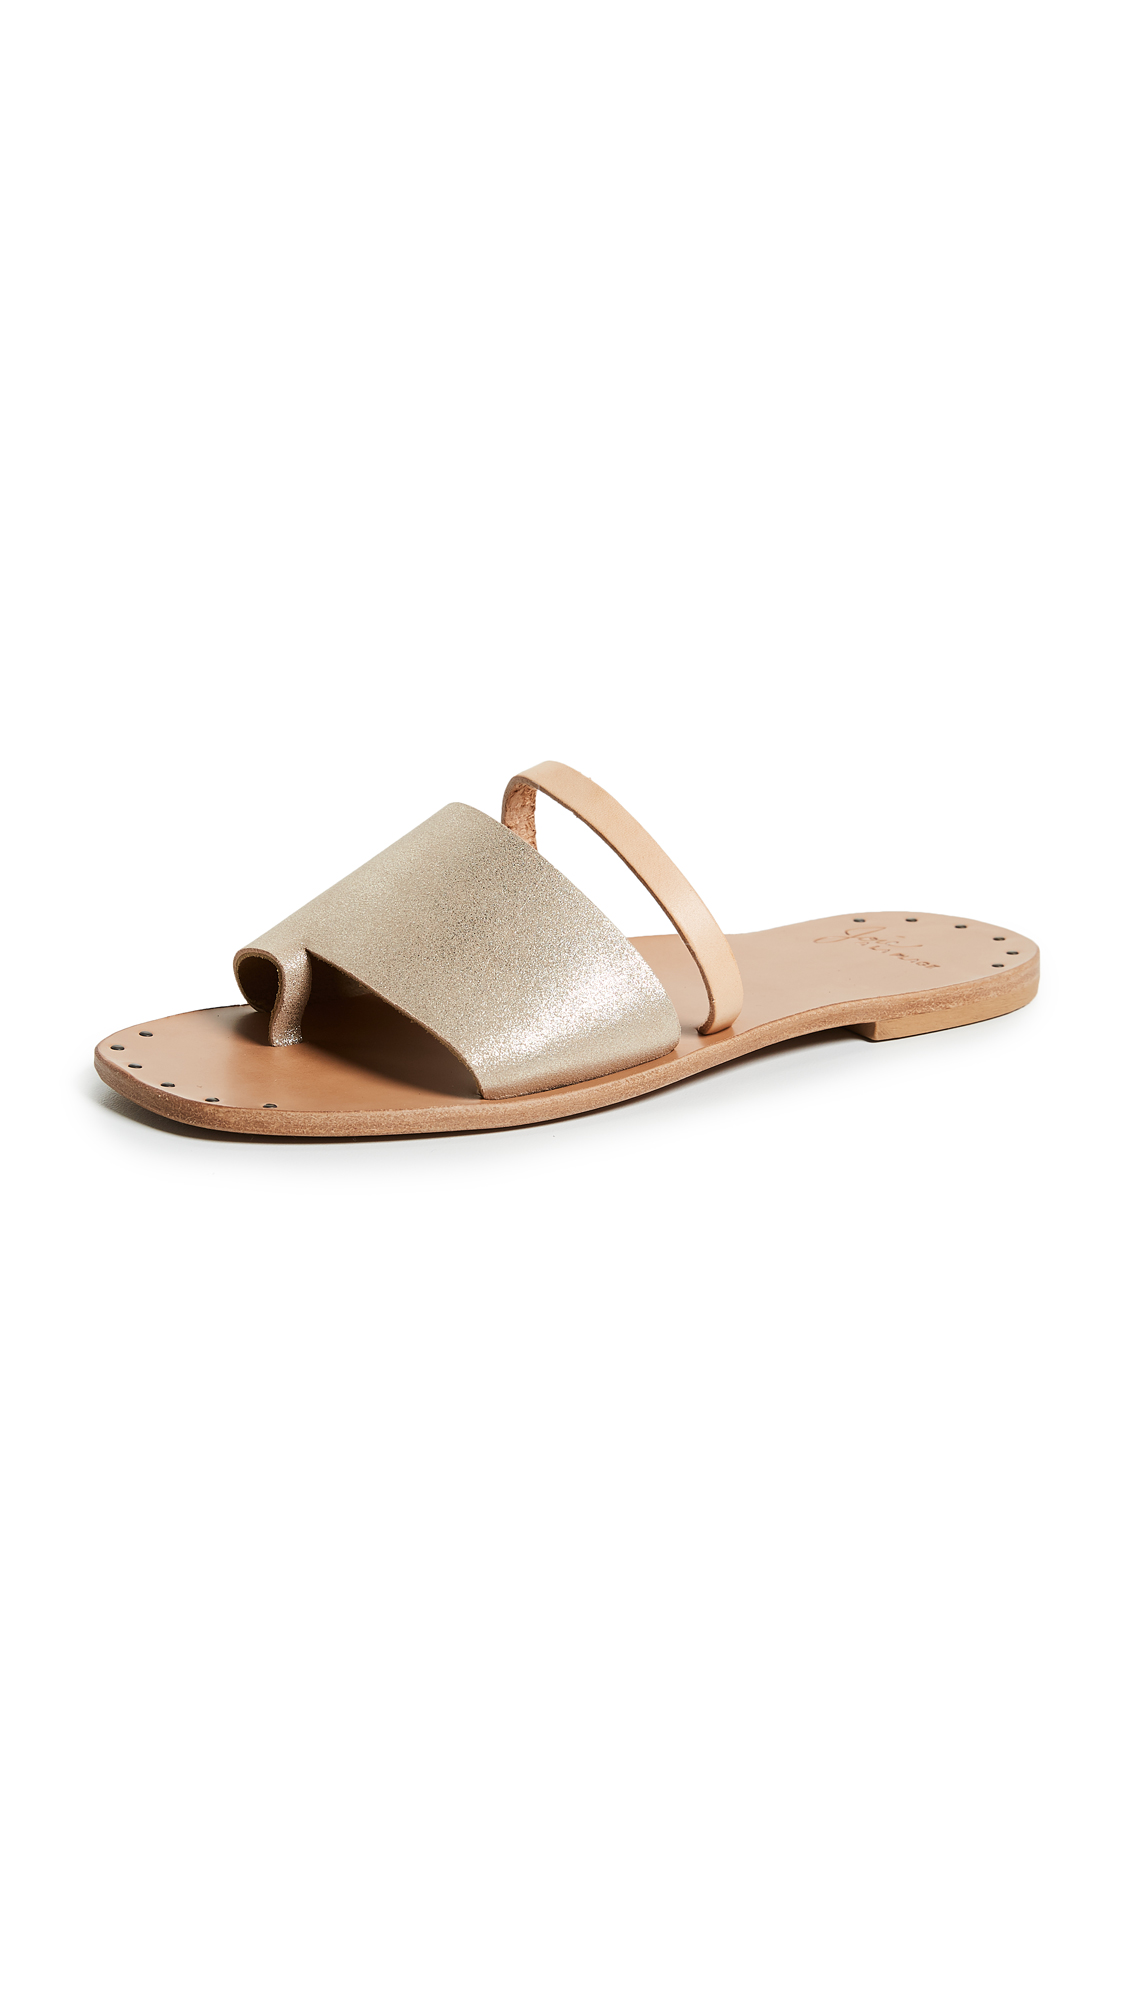 Joie Ballifly Slide Sandals In Blush